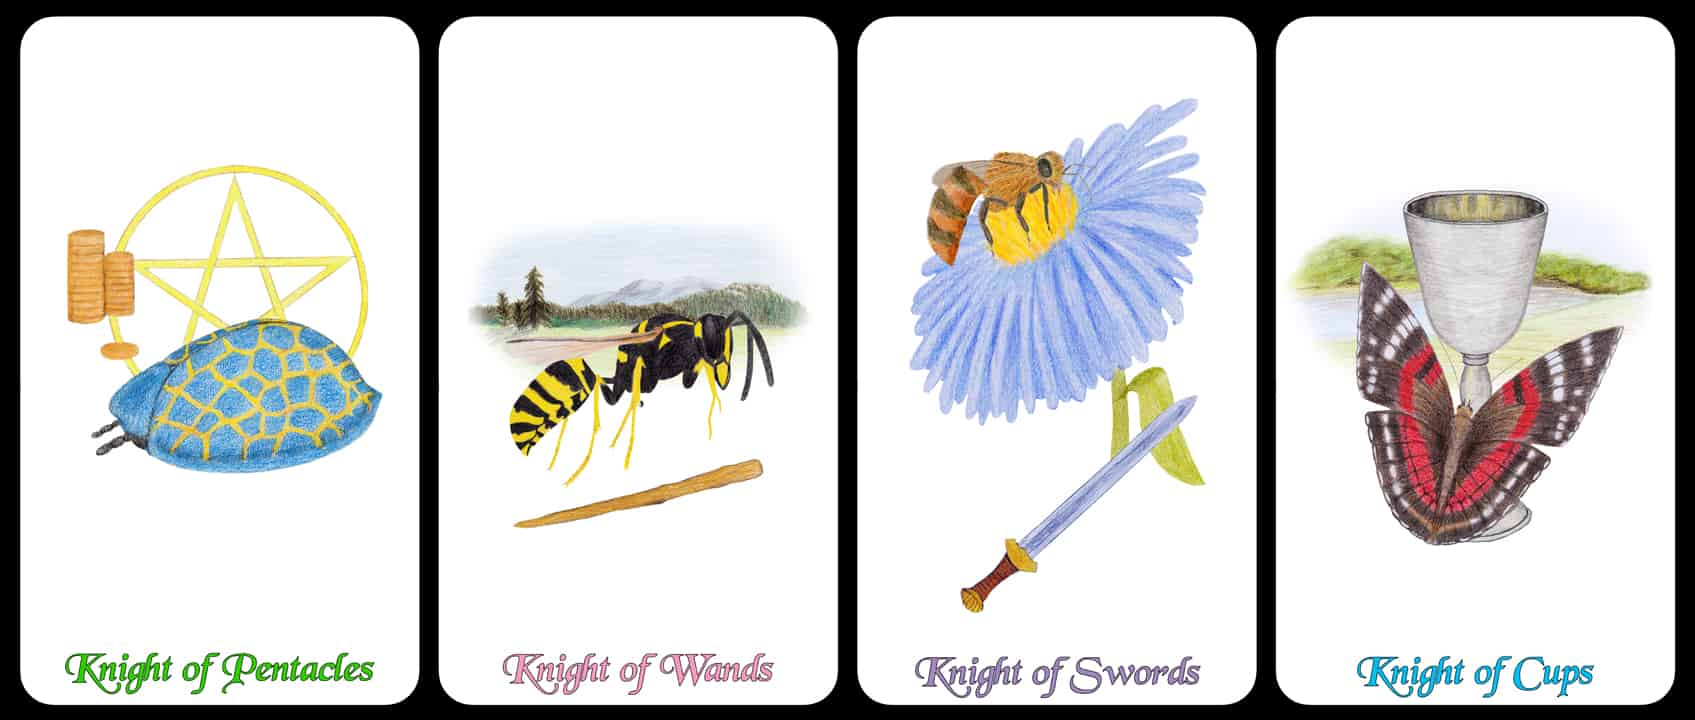 The Knights - The Arthropoda Tarot Deck by Linda Ursin